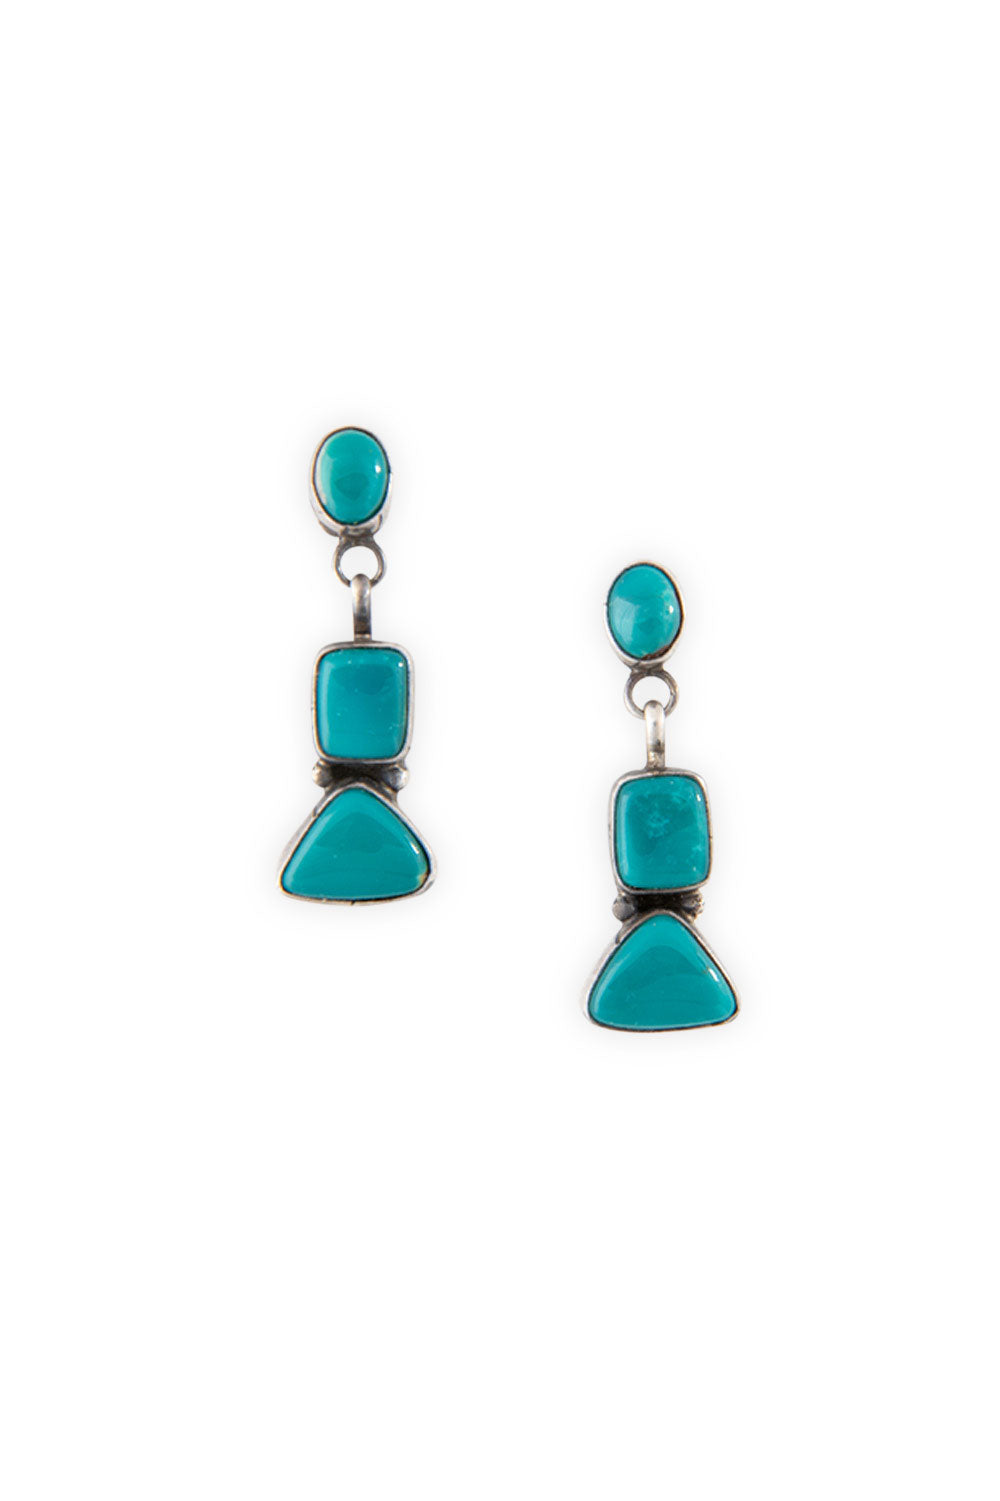 Earrings, Chandelier, Turquoise, 368